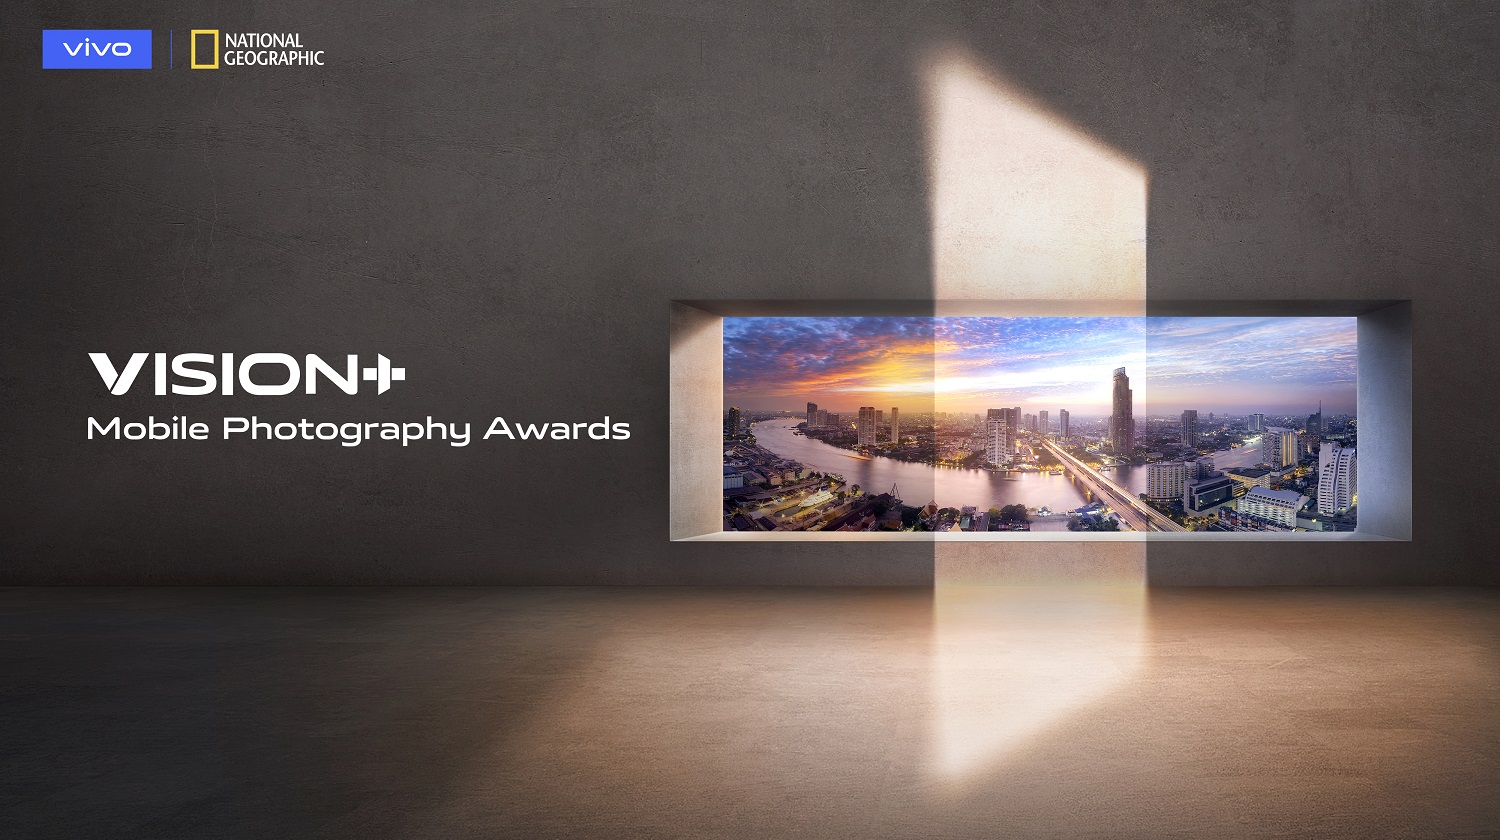 vivo Announces Picture of the Year and Winning Creations in vivo VISION+ Mobile Photography Awards 2020